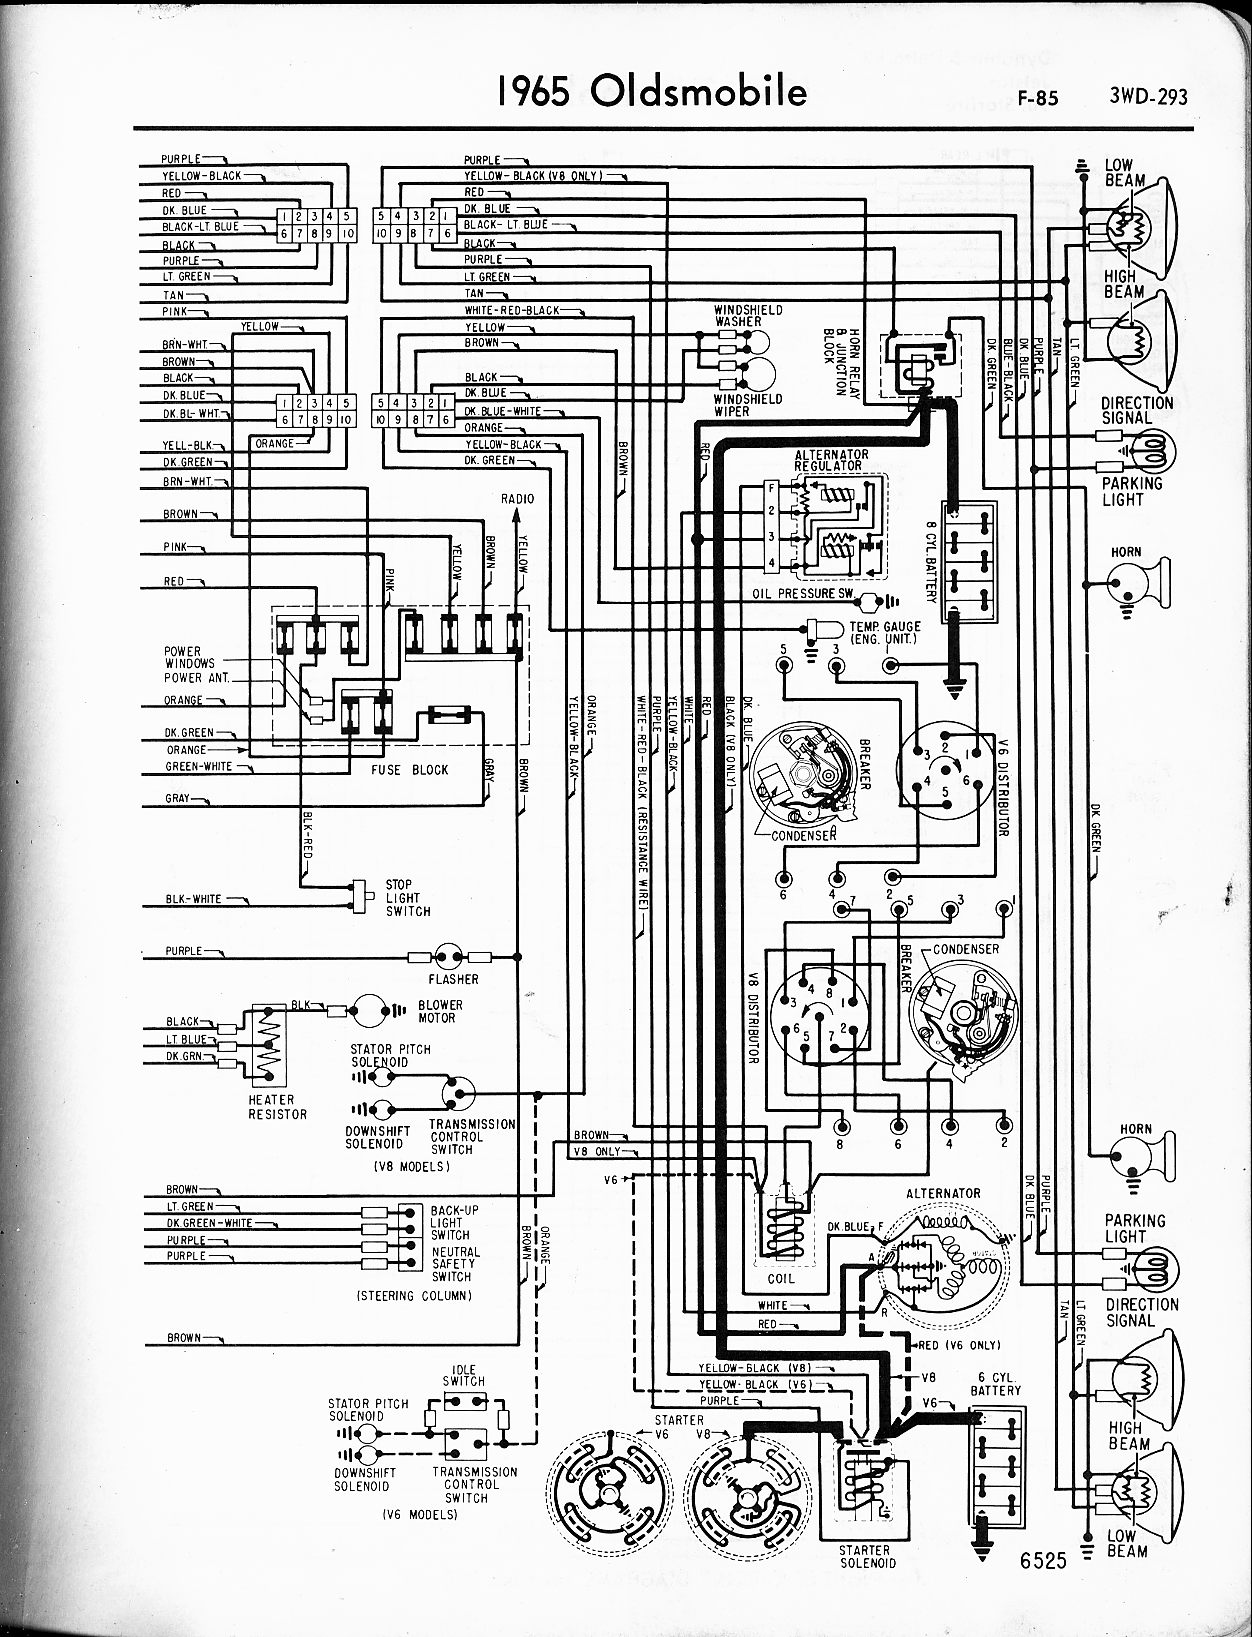 1987 oldsmobile power window wiring diagram oldsmobile wiring diagrams - the old car manual project